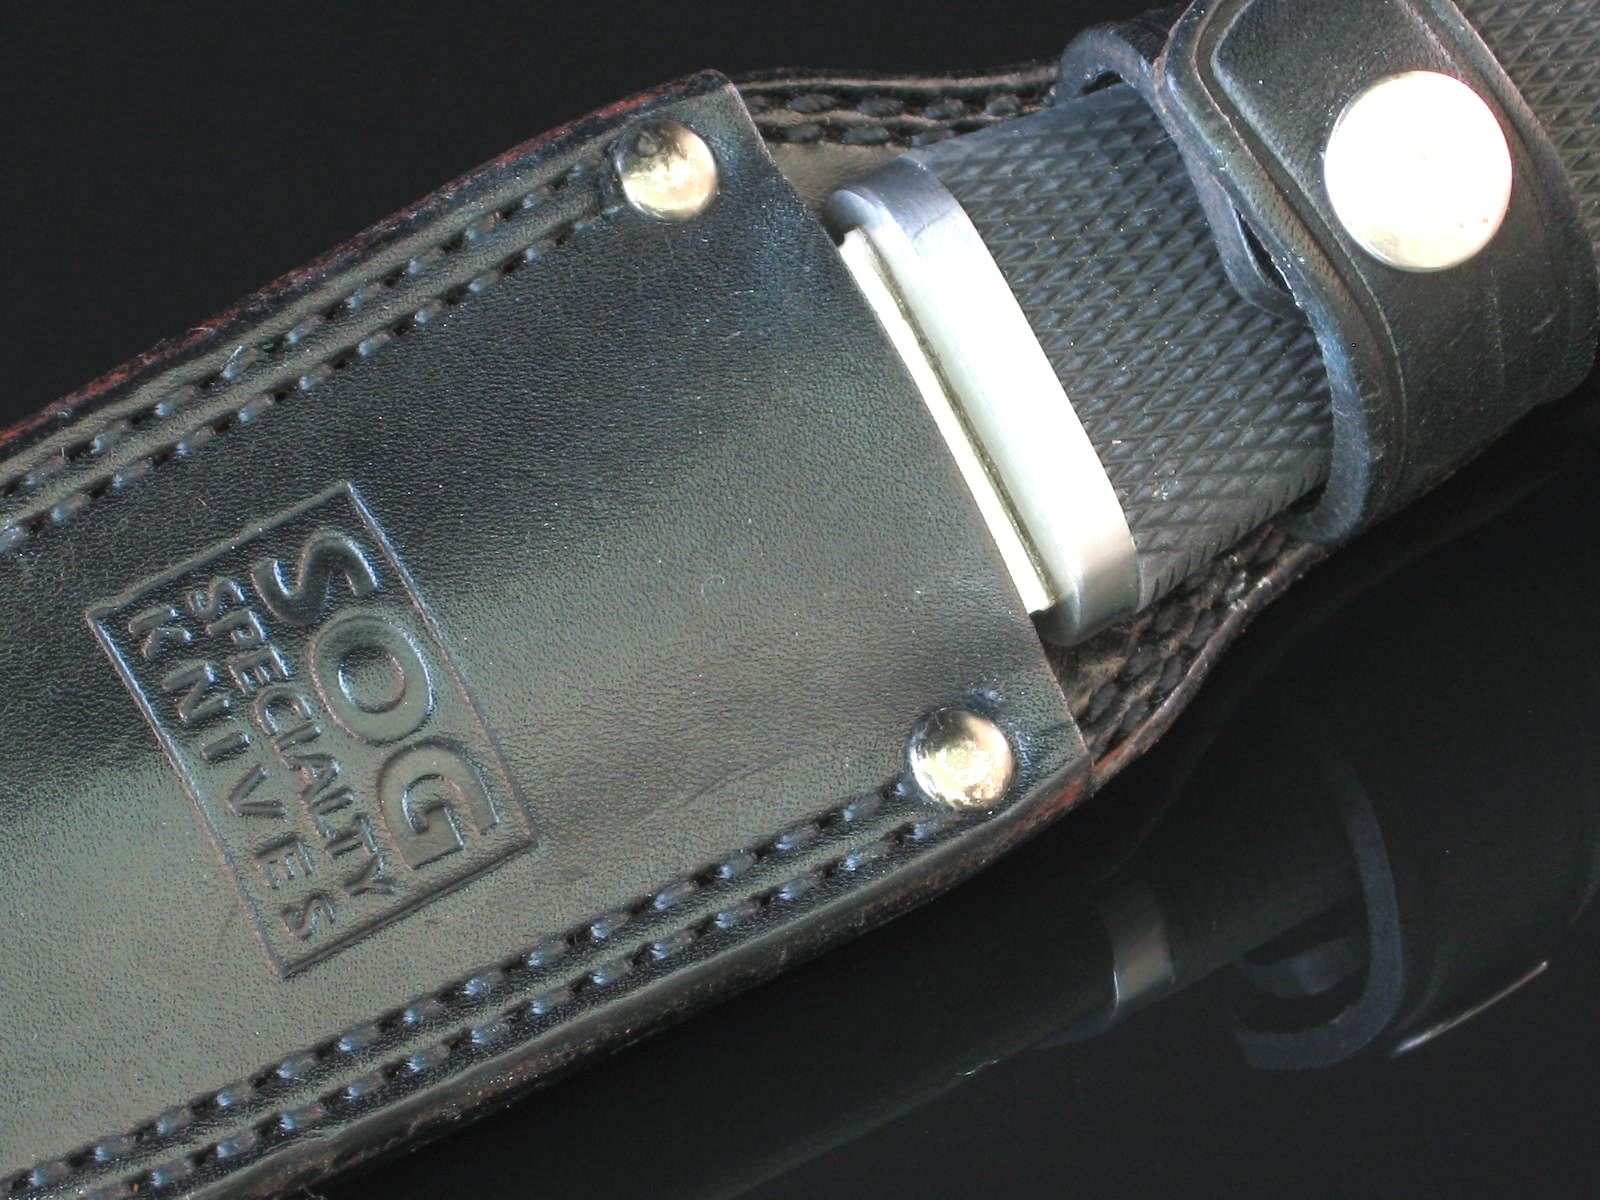 SOG Pentagon in older leather sheath snug fit...  Dagger (Photo: Arthur Margain)